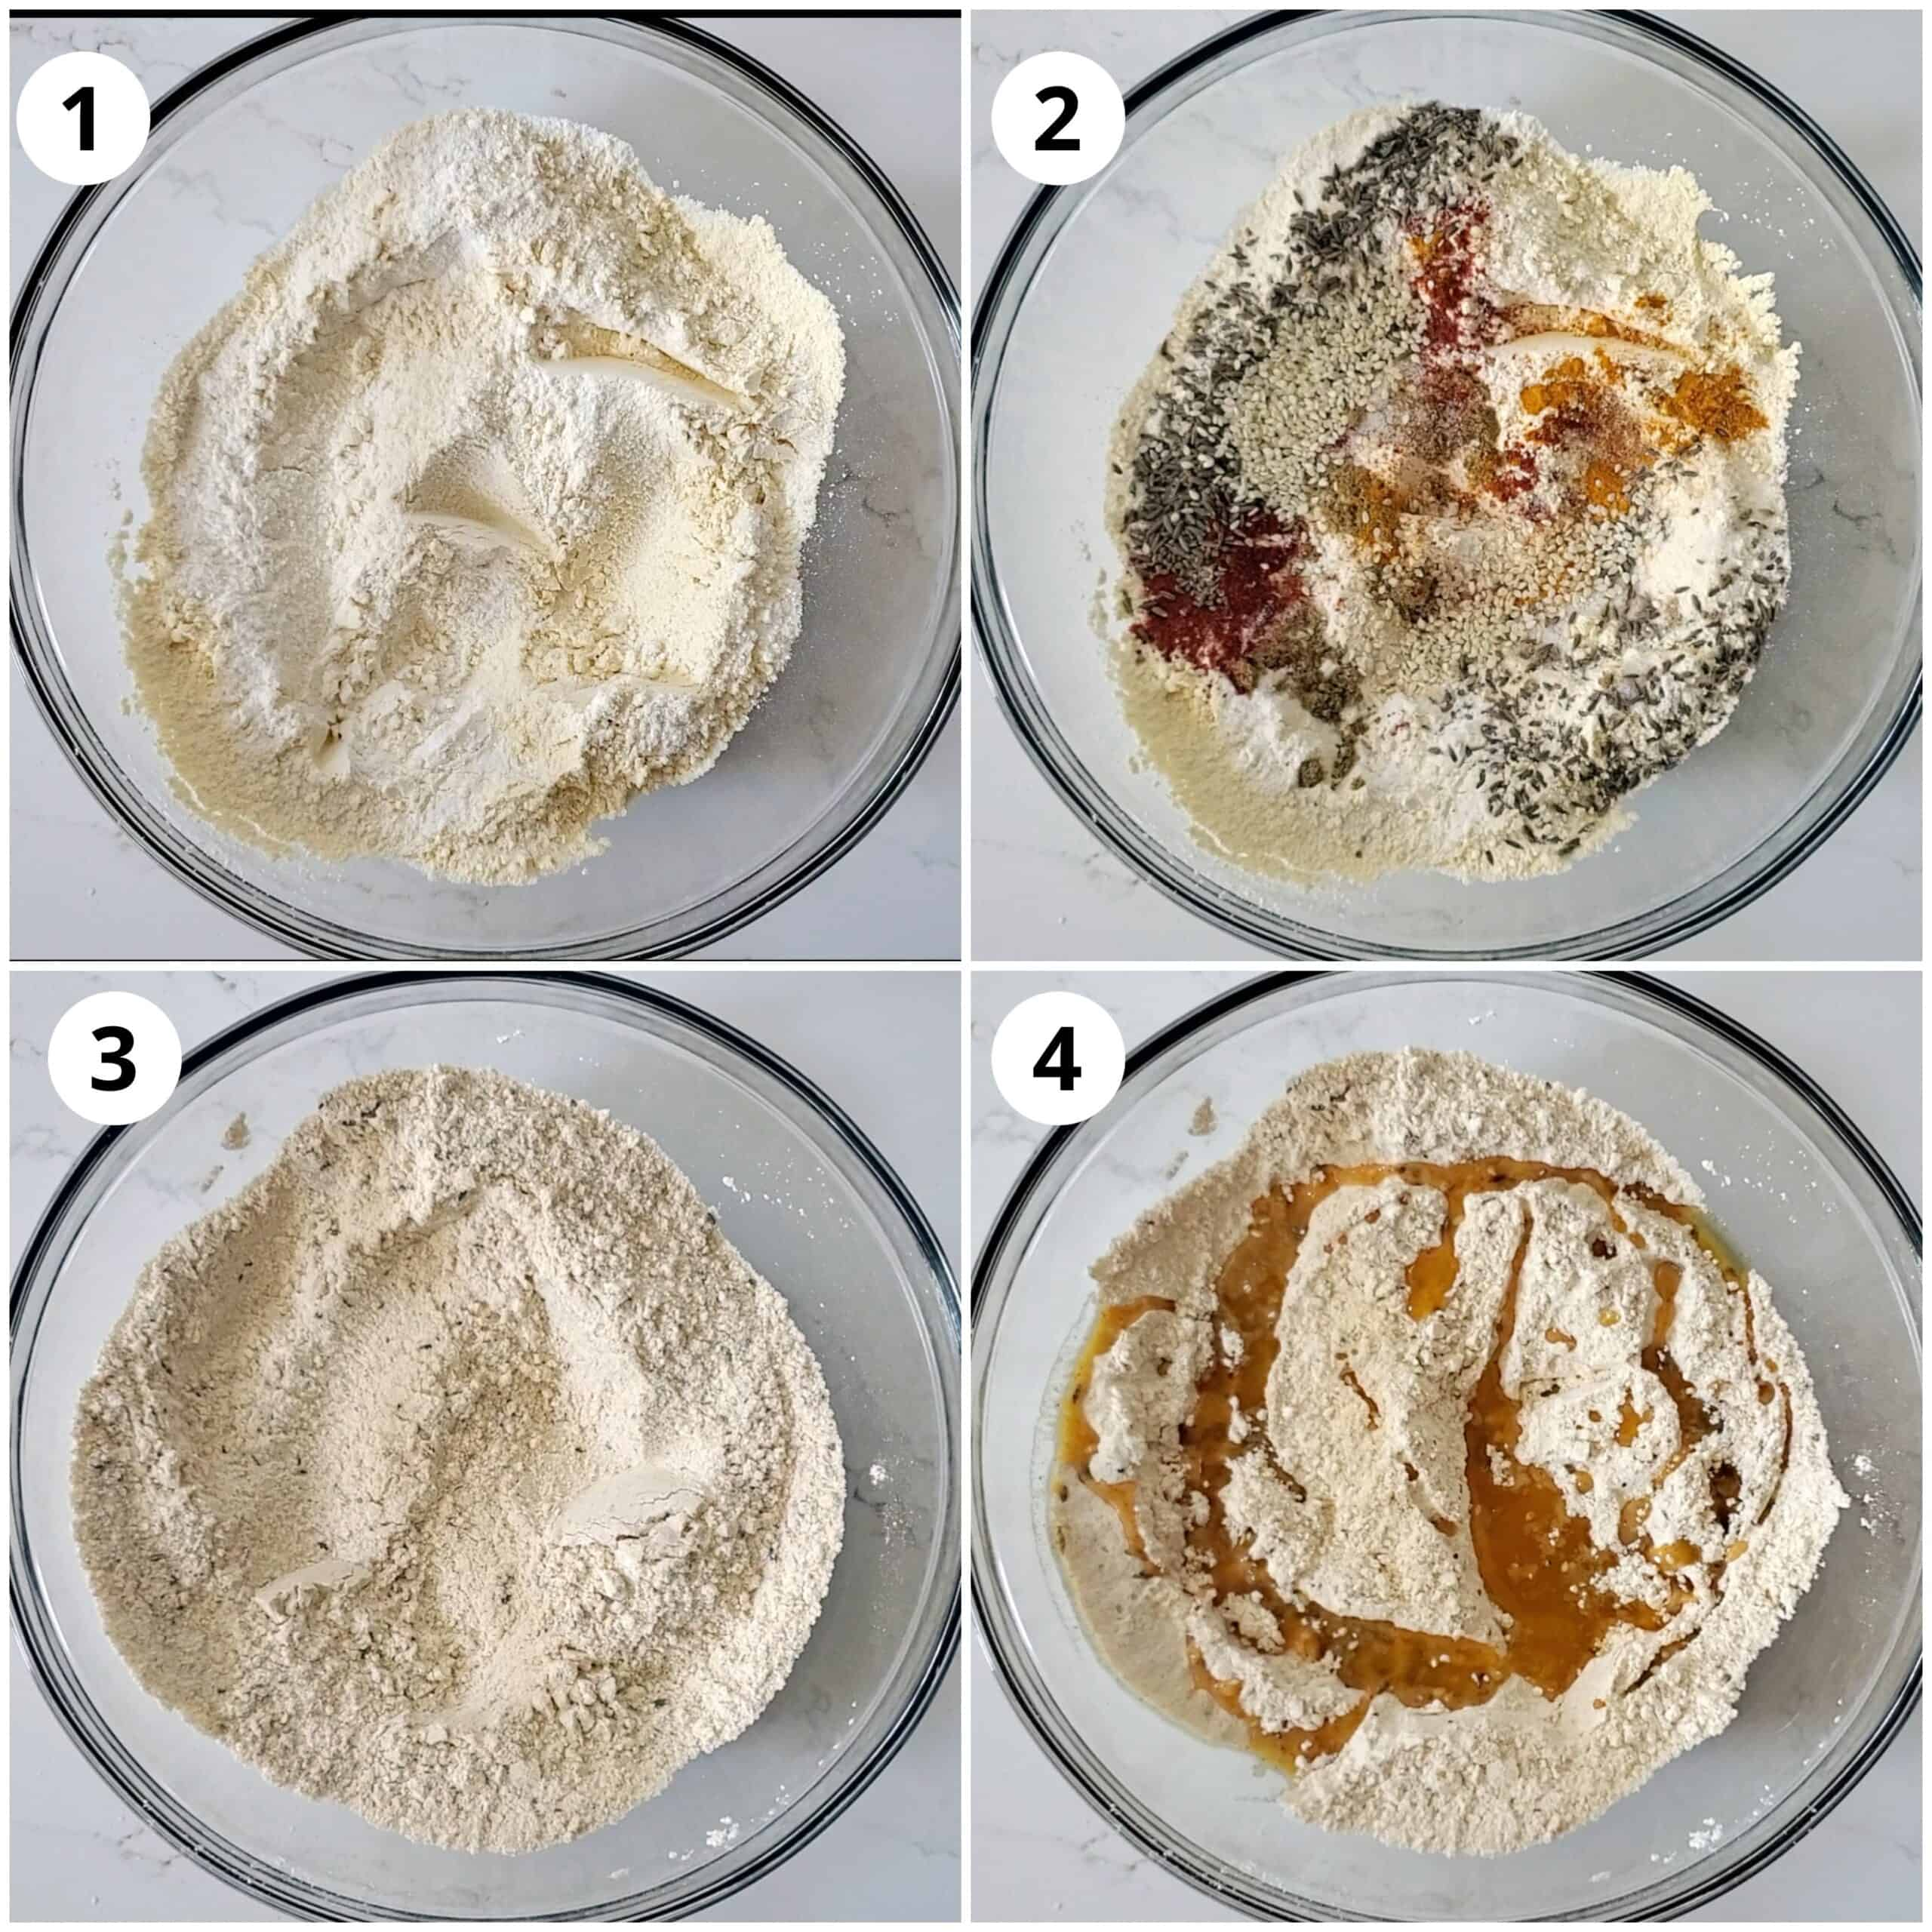 Steps showing mxing flour, spices and seeds in a bowl